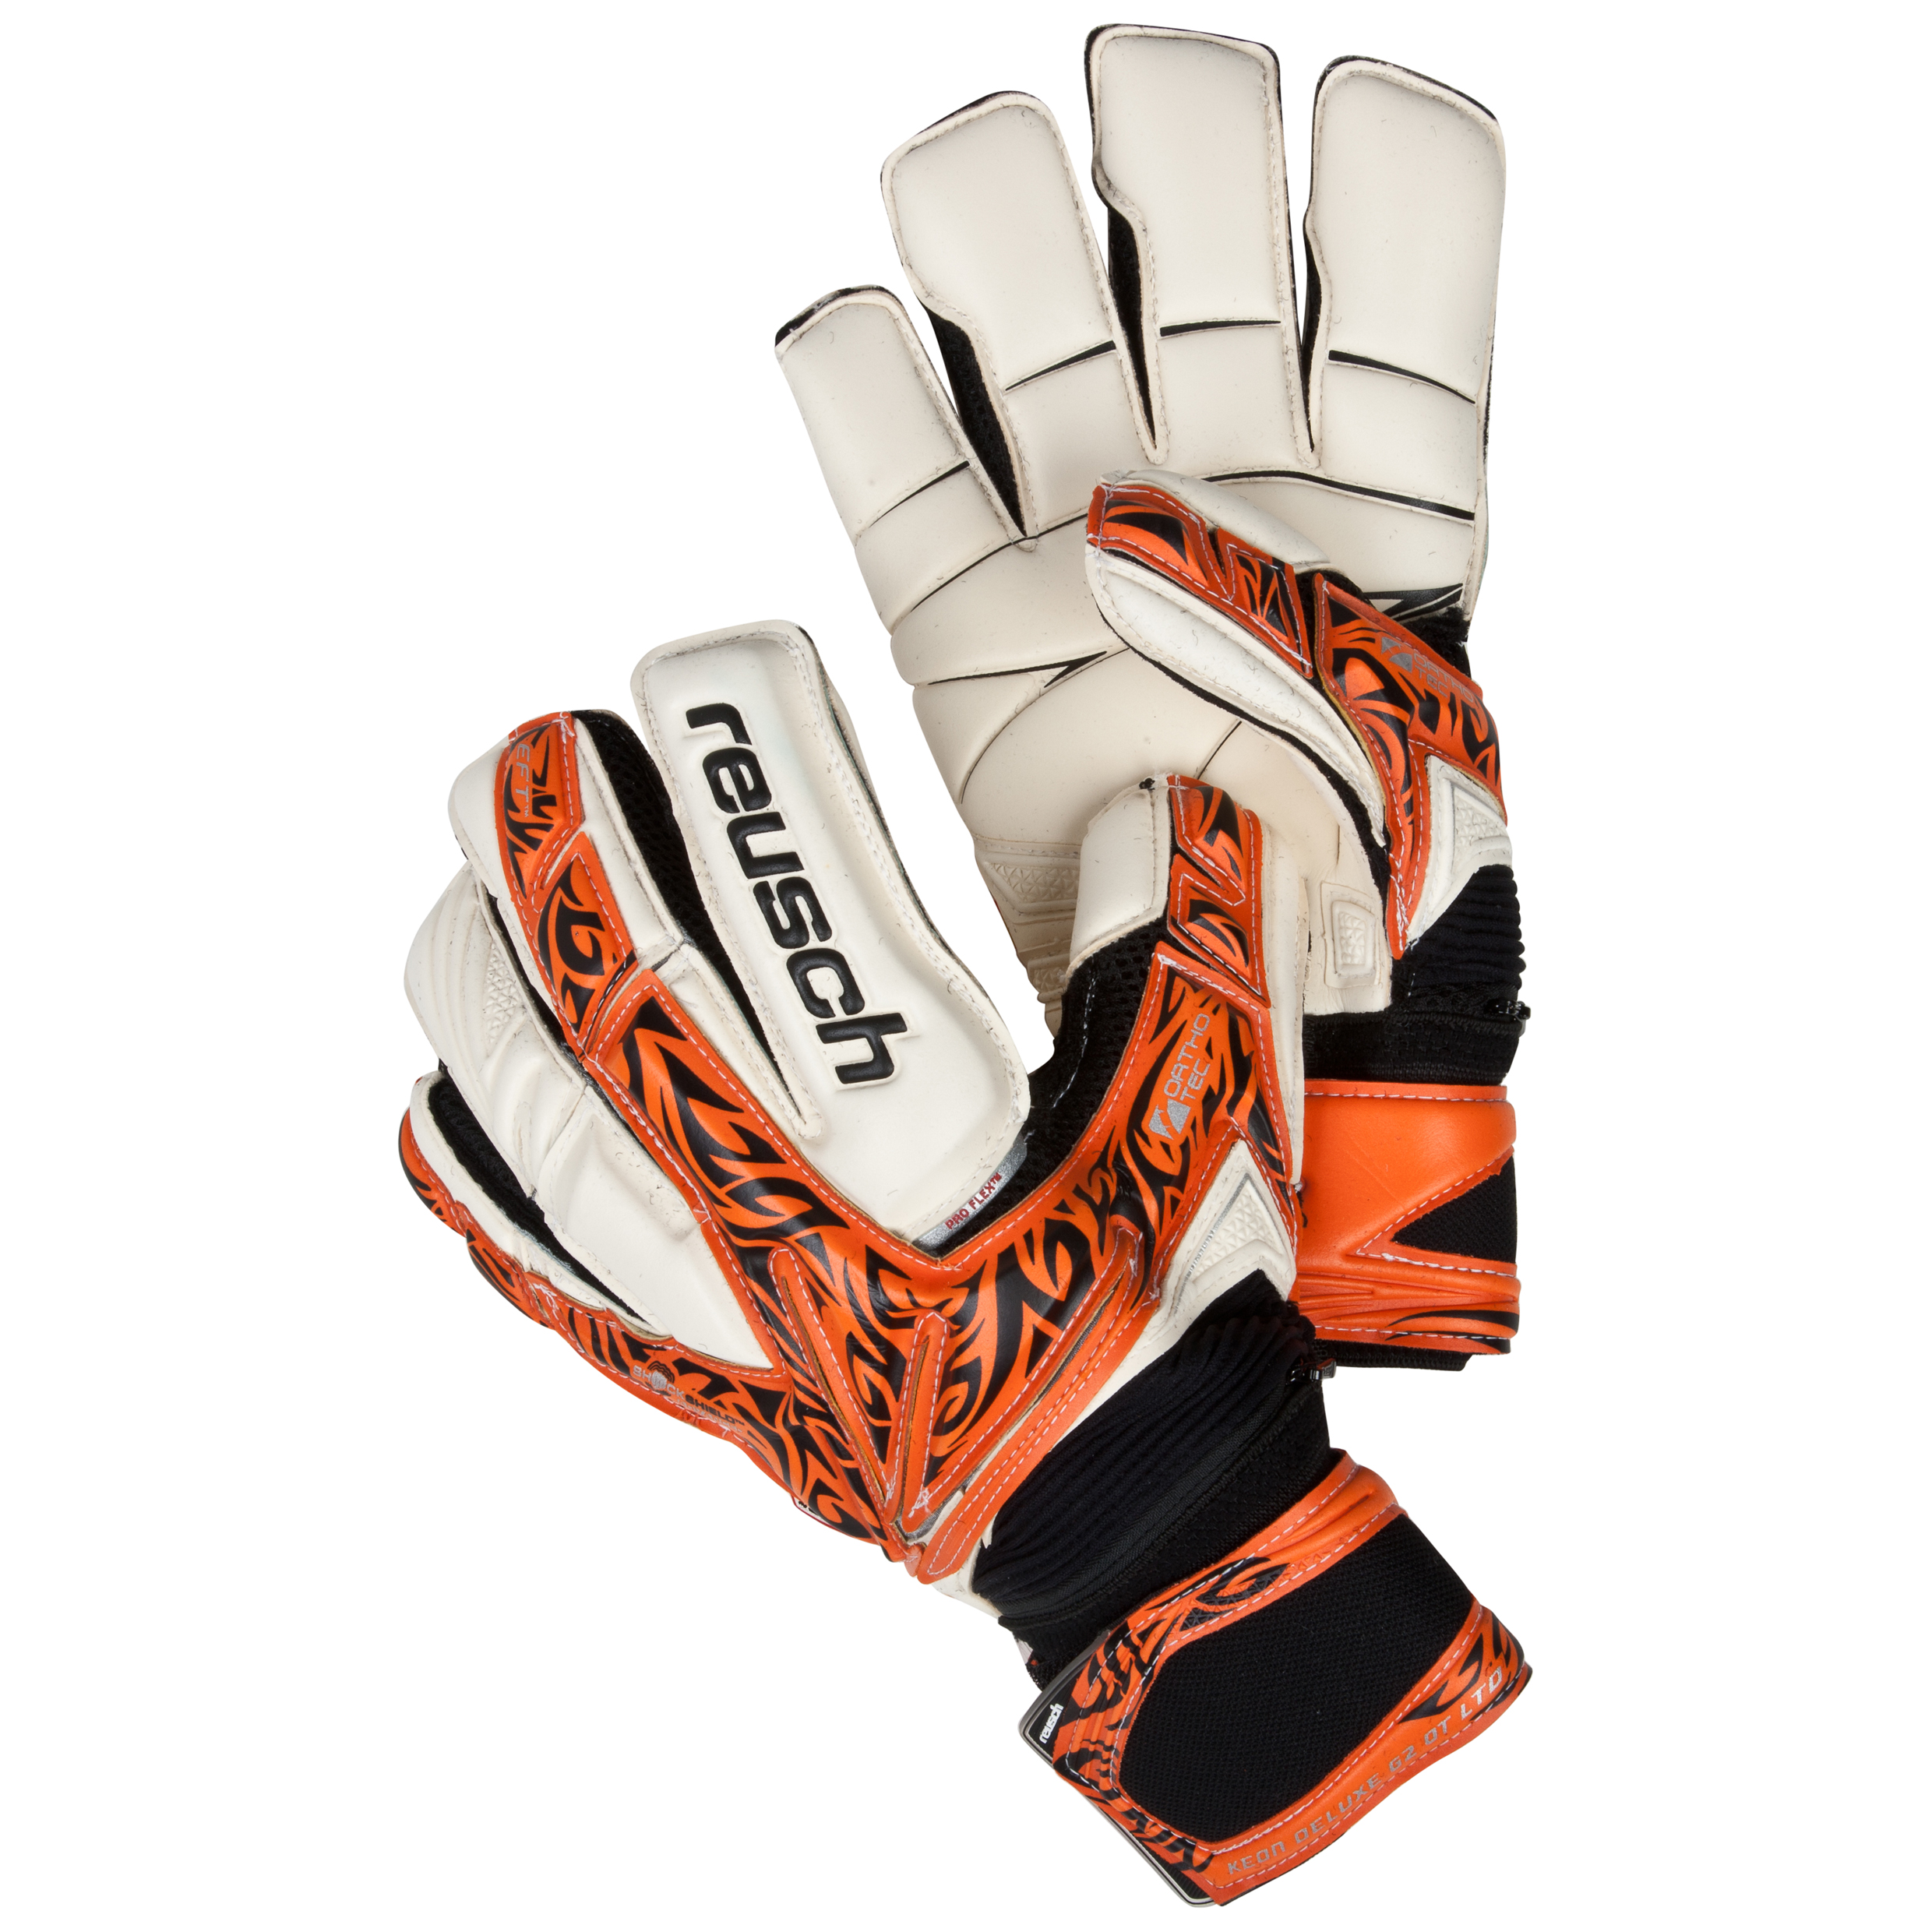 Reusch Keon Deluxe G2 Ortho-Tec LTD?Goalkeeper Gloves